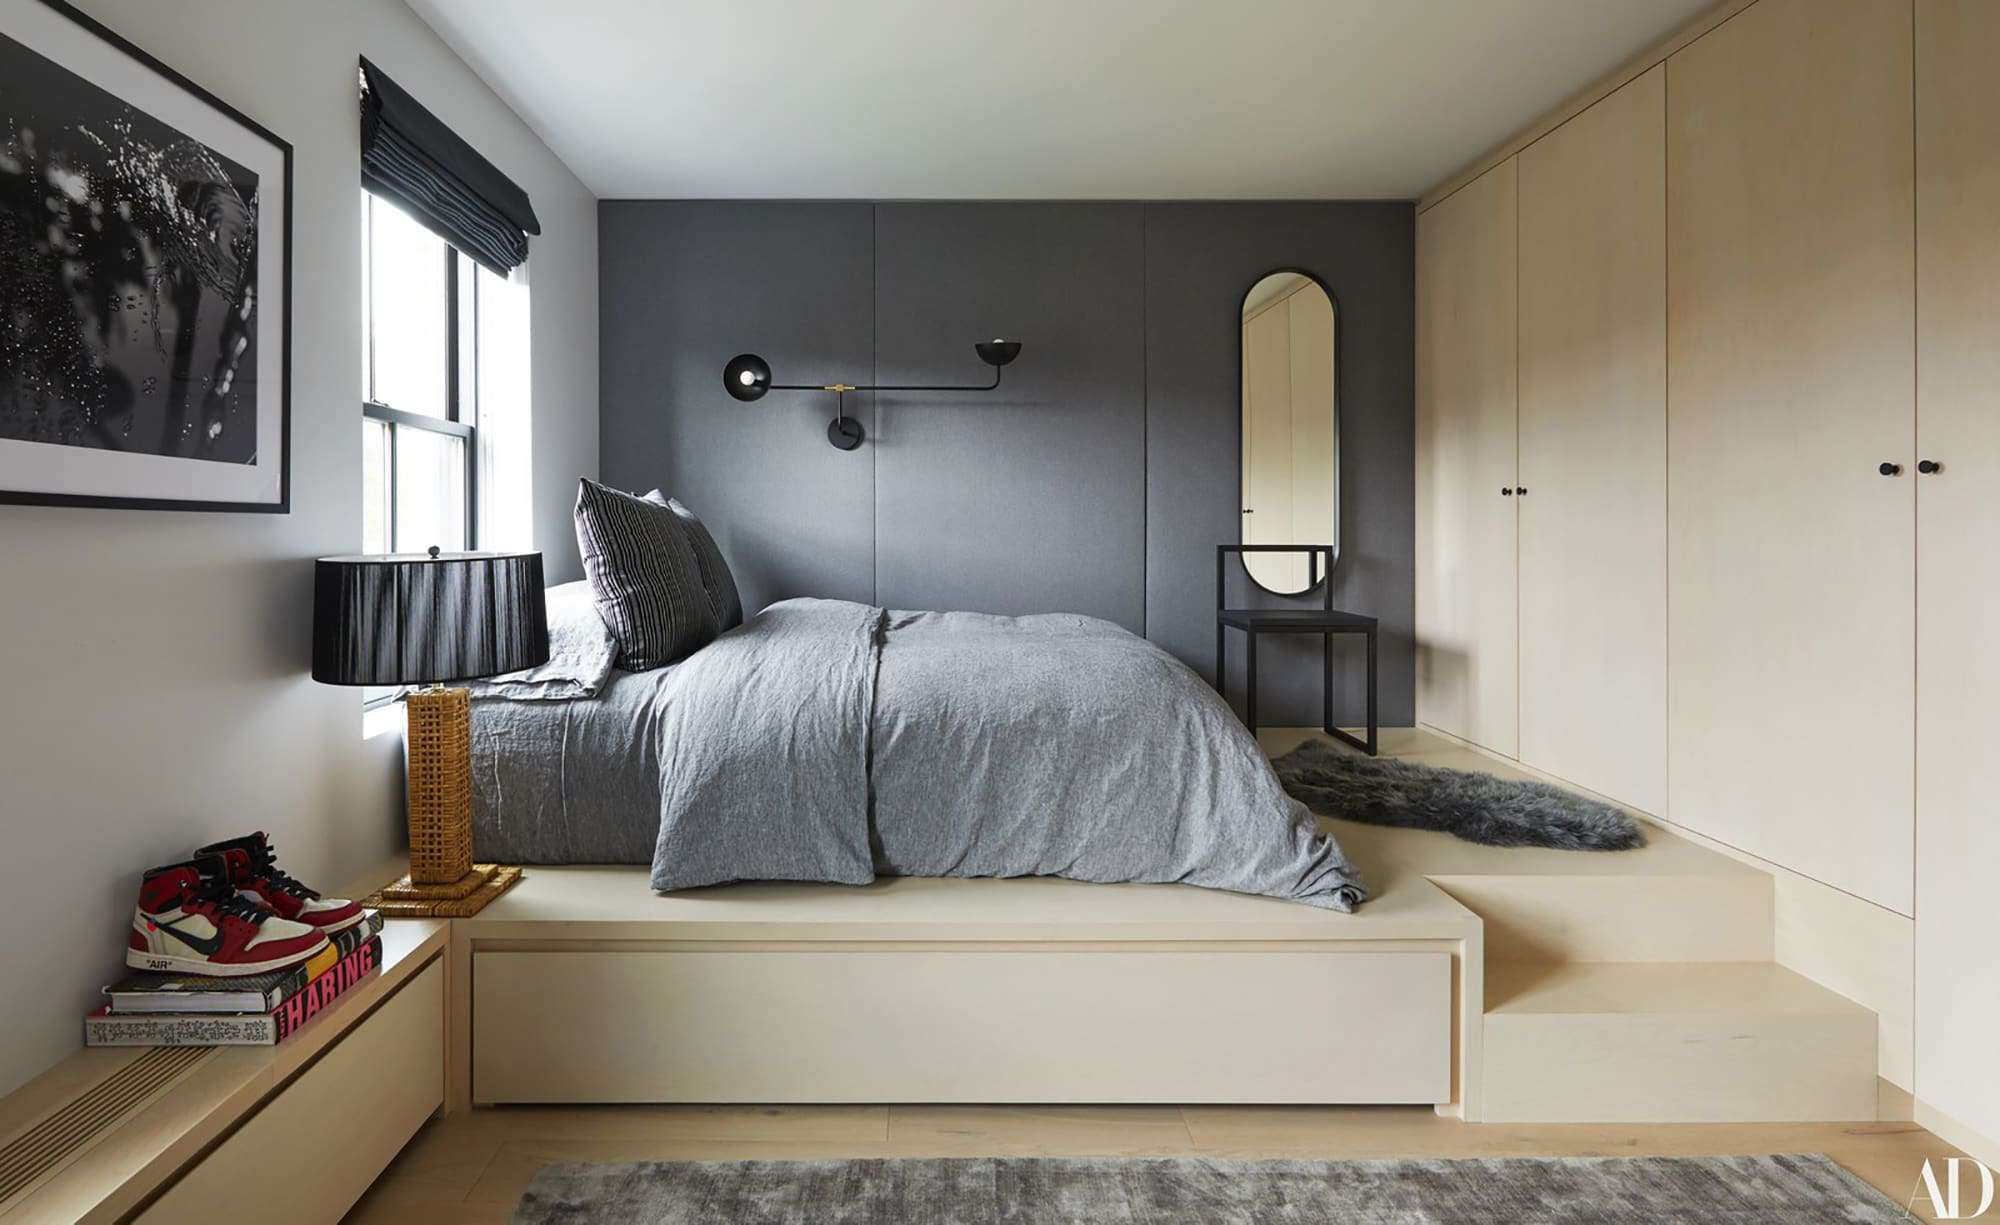 Budget Room: 3 Bedroom Designs Your Teen Will Approve Of on Rooms For Teenagers  id=57402